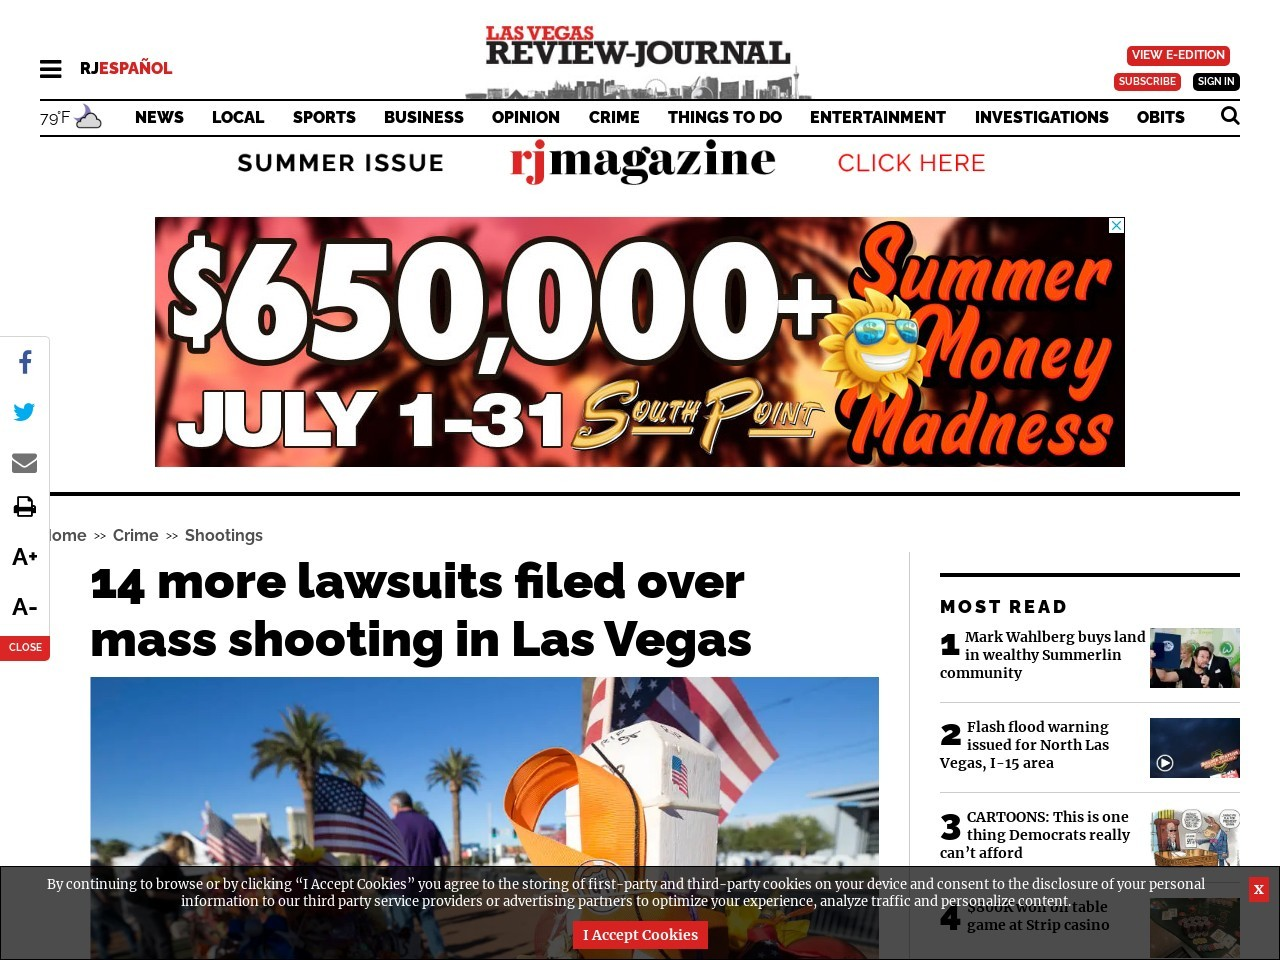 14 more lawsuits filed over mass shooting in Las Vegas